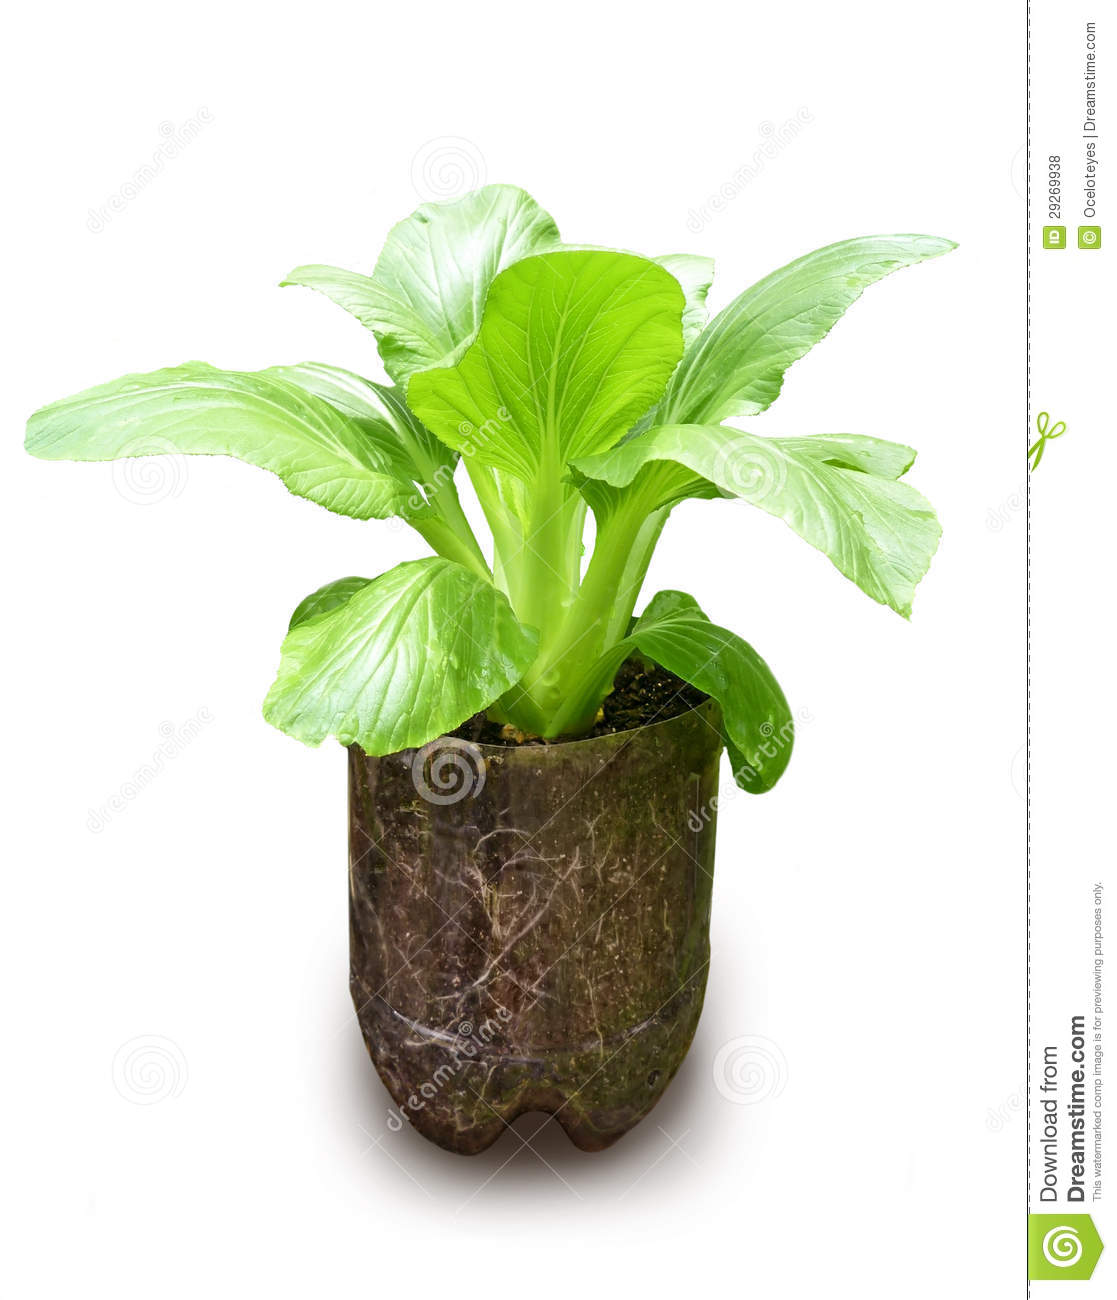 Fresh Bok Choy Plant Growing In Recycled Container Stock Photo